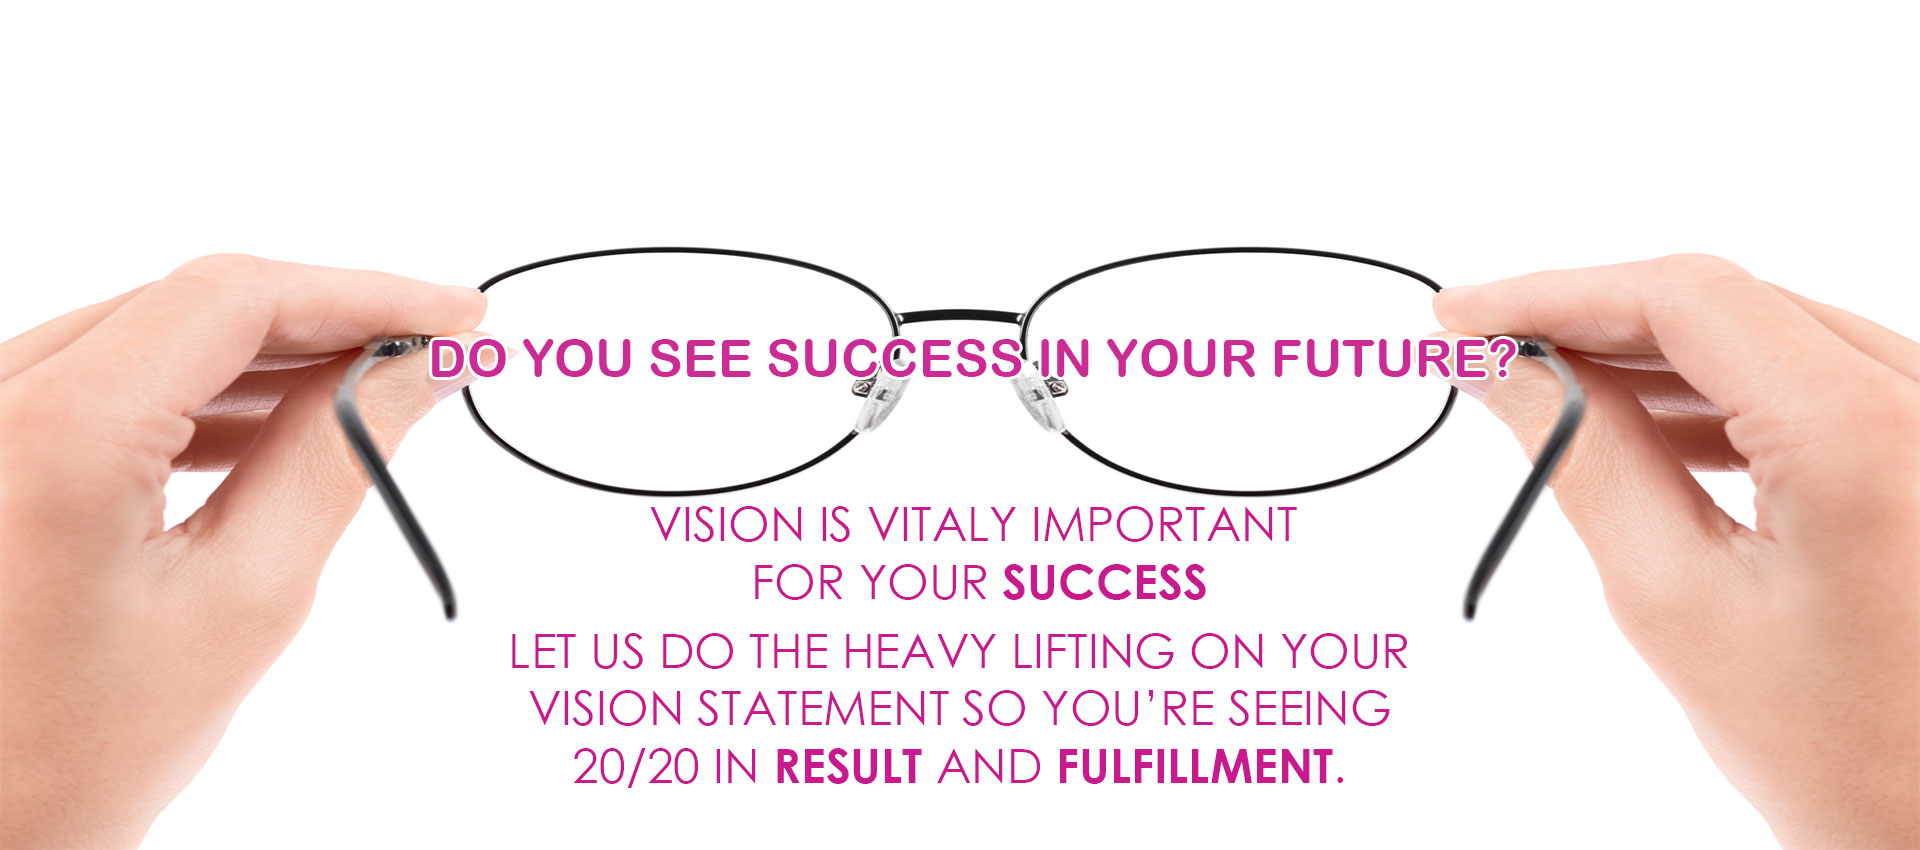 Do You See Success in Your Future